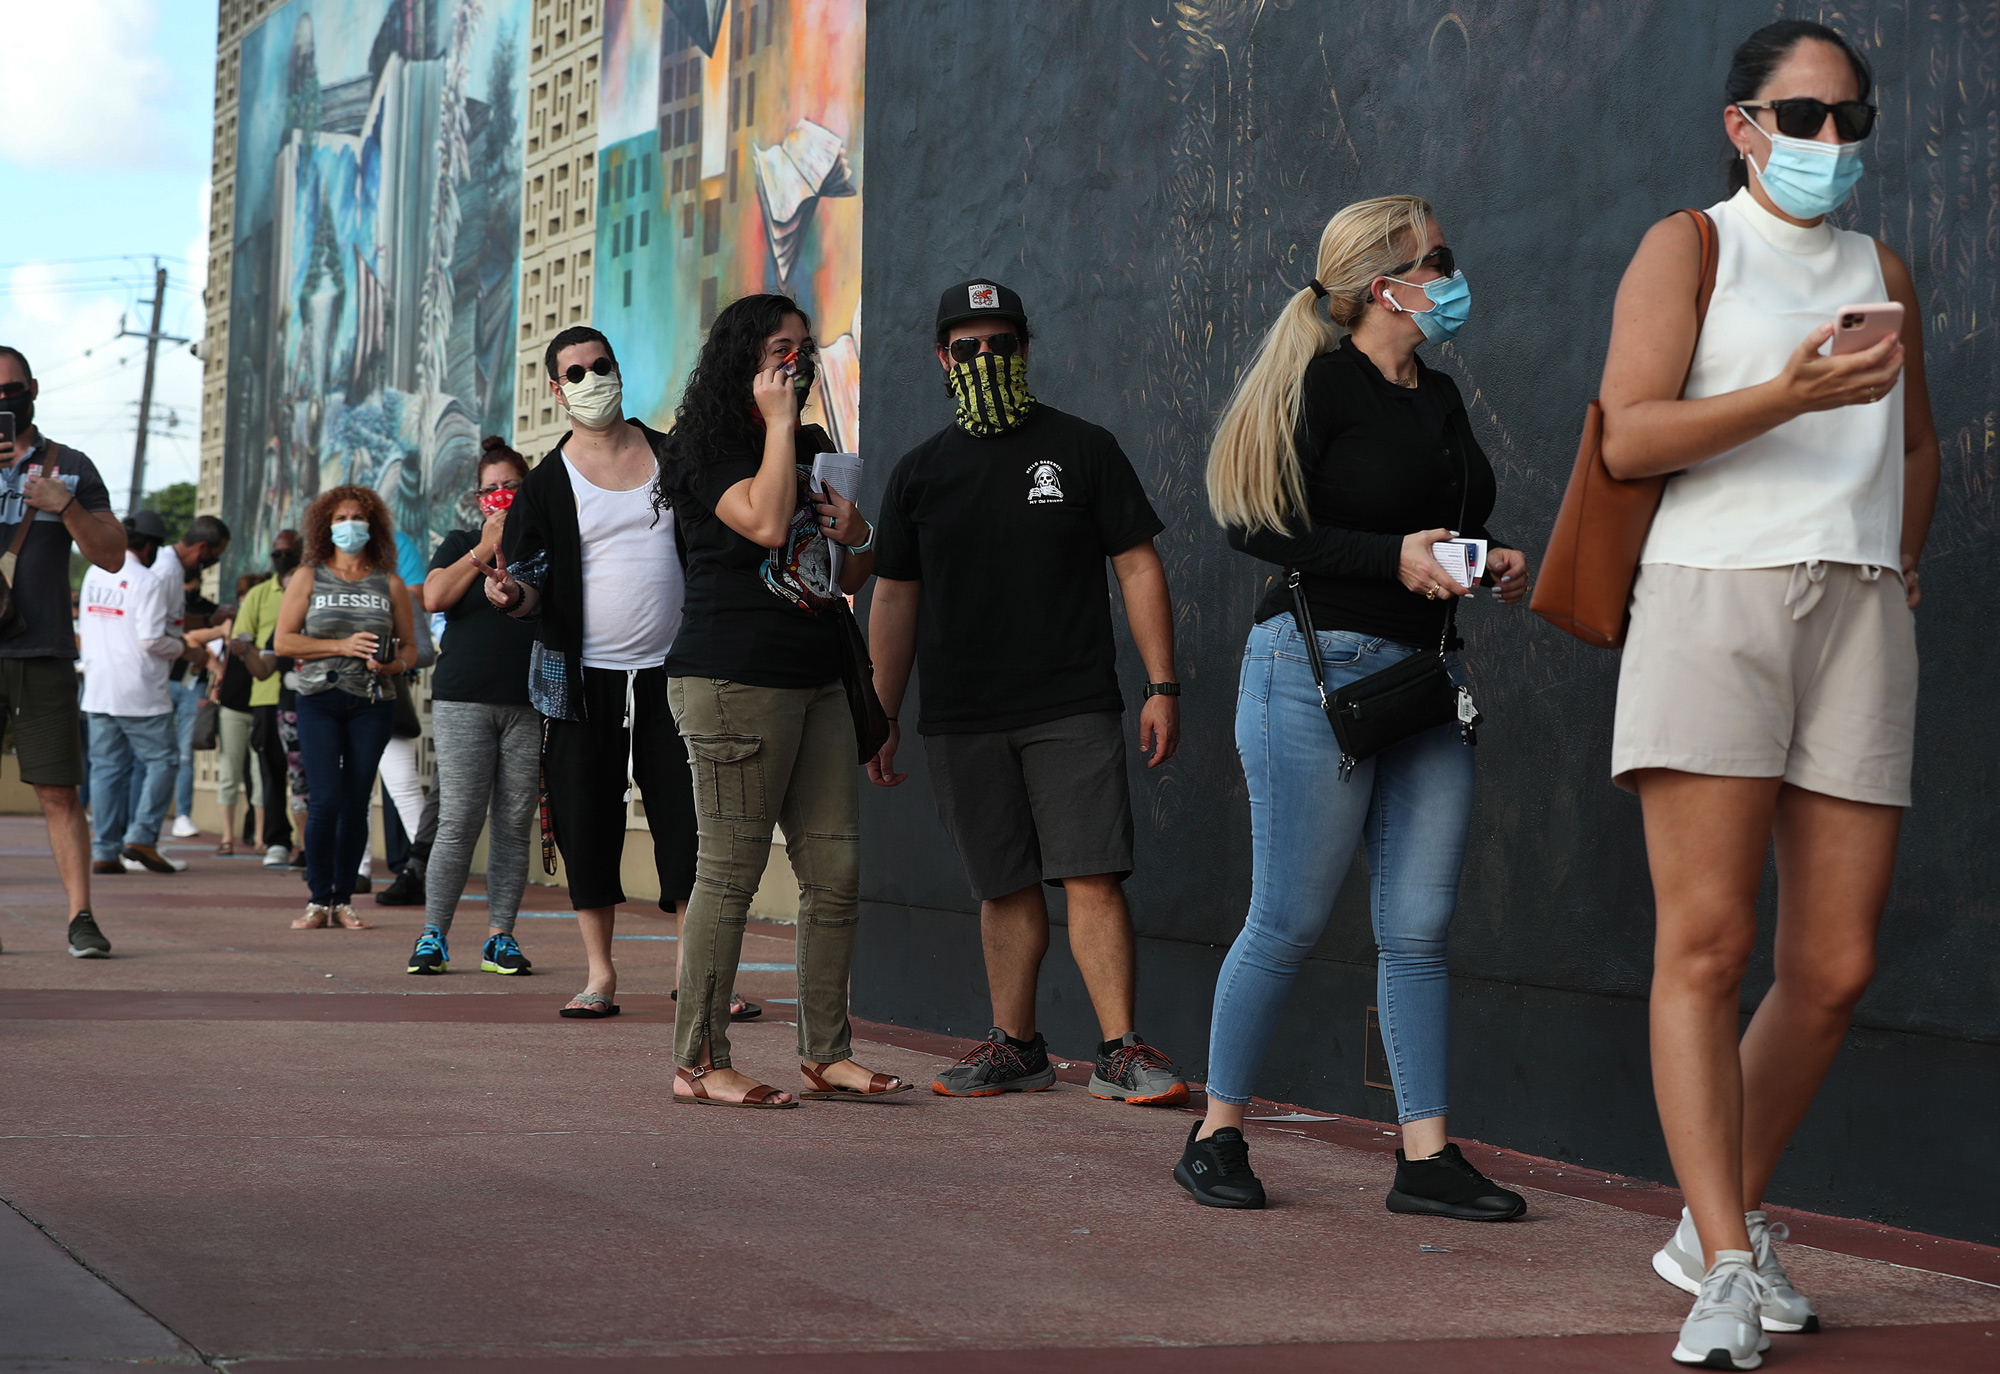 Voters wait in line to cast their early ballots at the Hialeah John F. Kennedy Library polling station on October 28 in Hialeah, Florida.